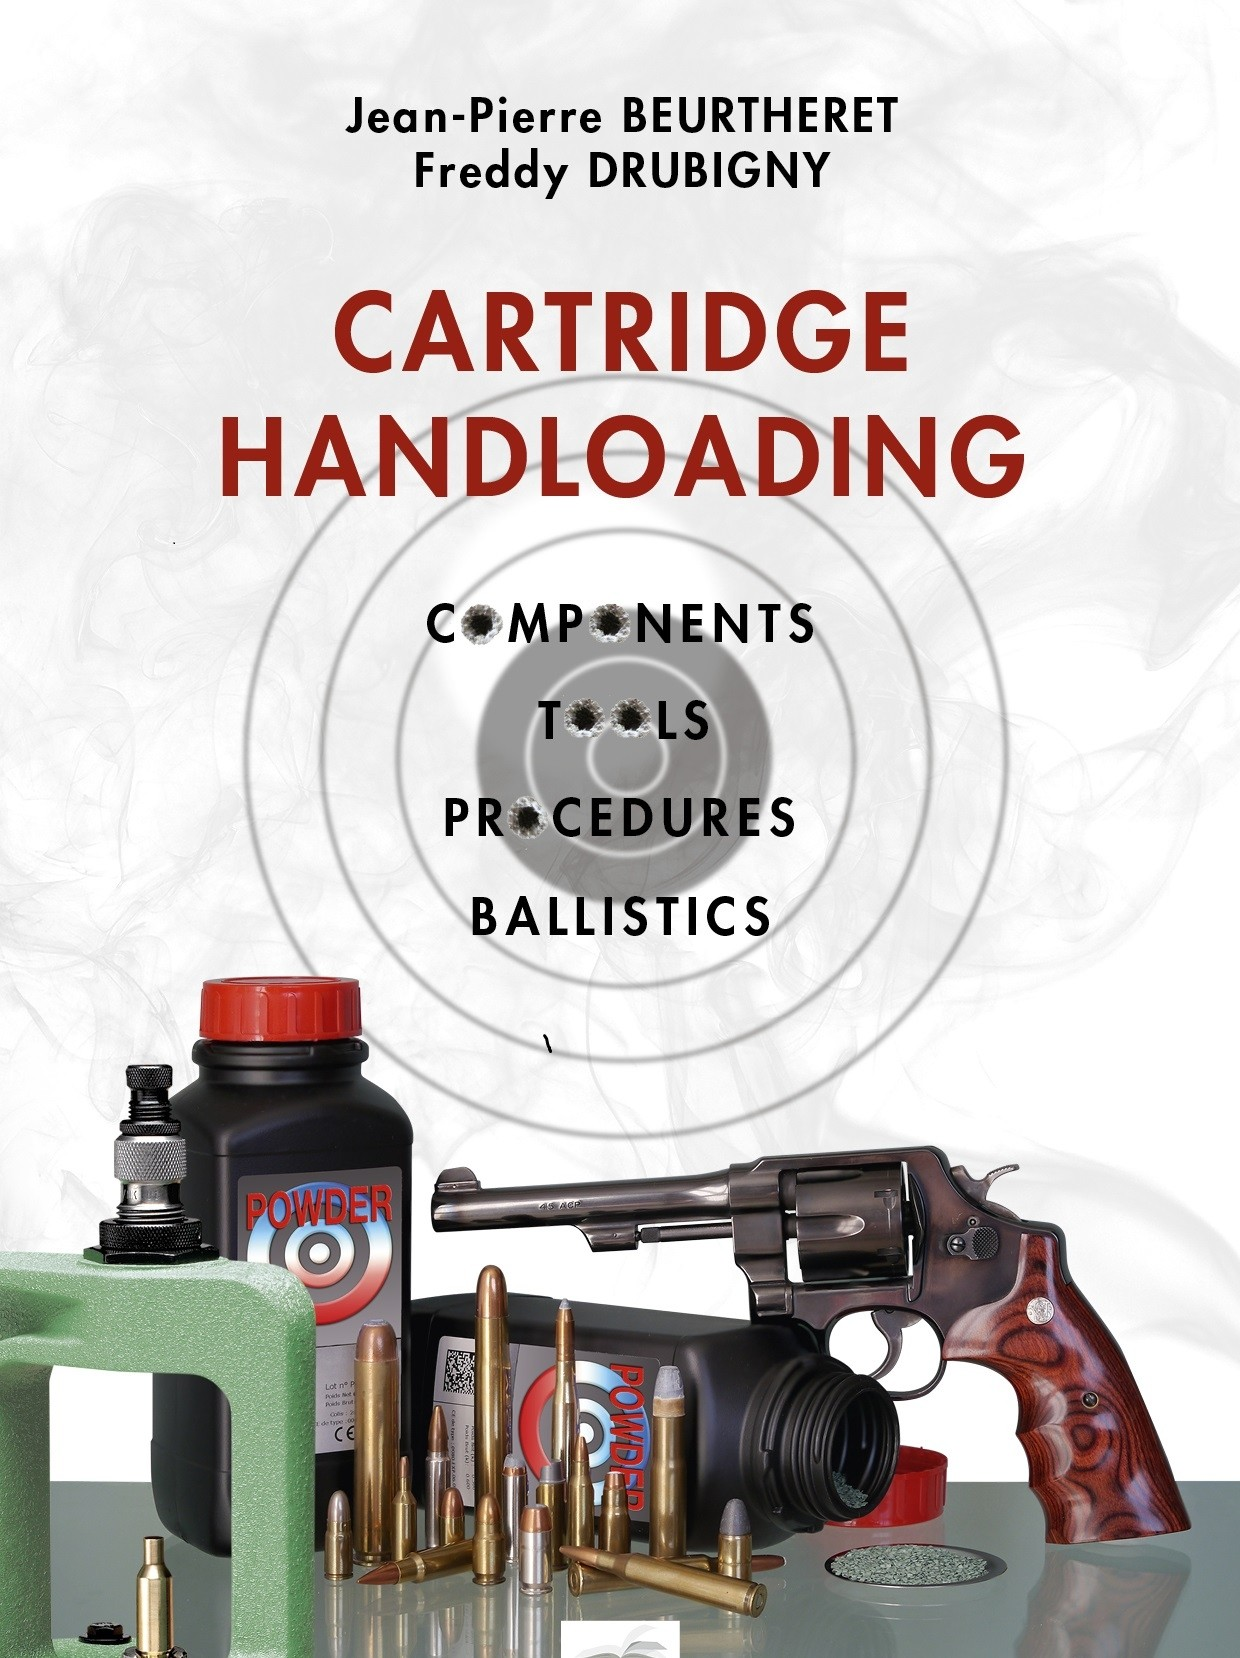 Cartridge Handloading Jean-Pierre Beurtheret / Freddy Drubigny in English